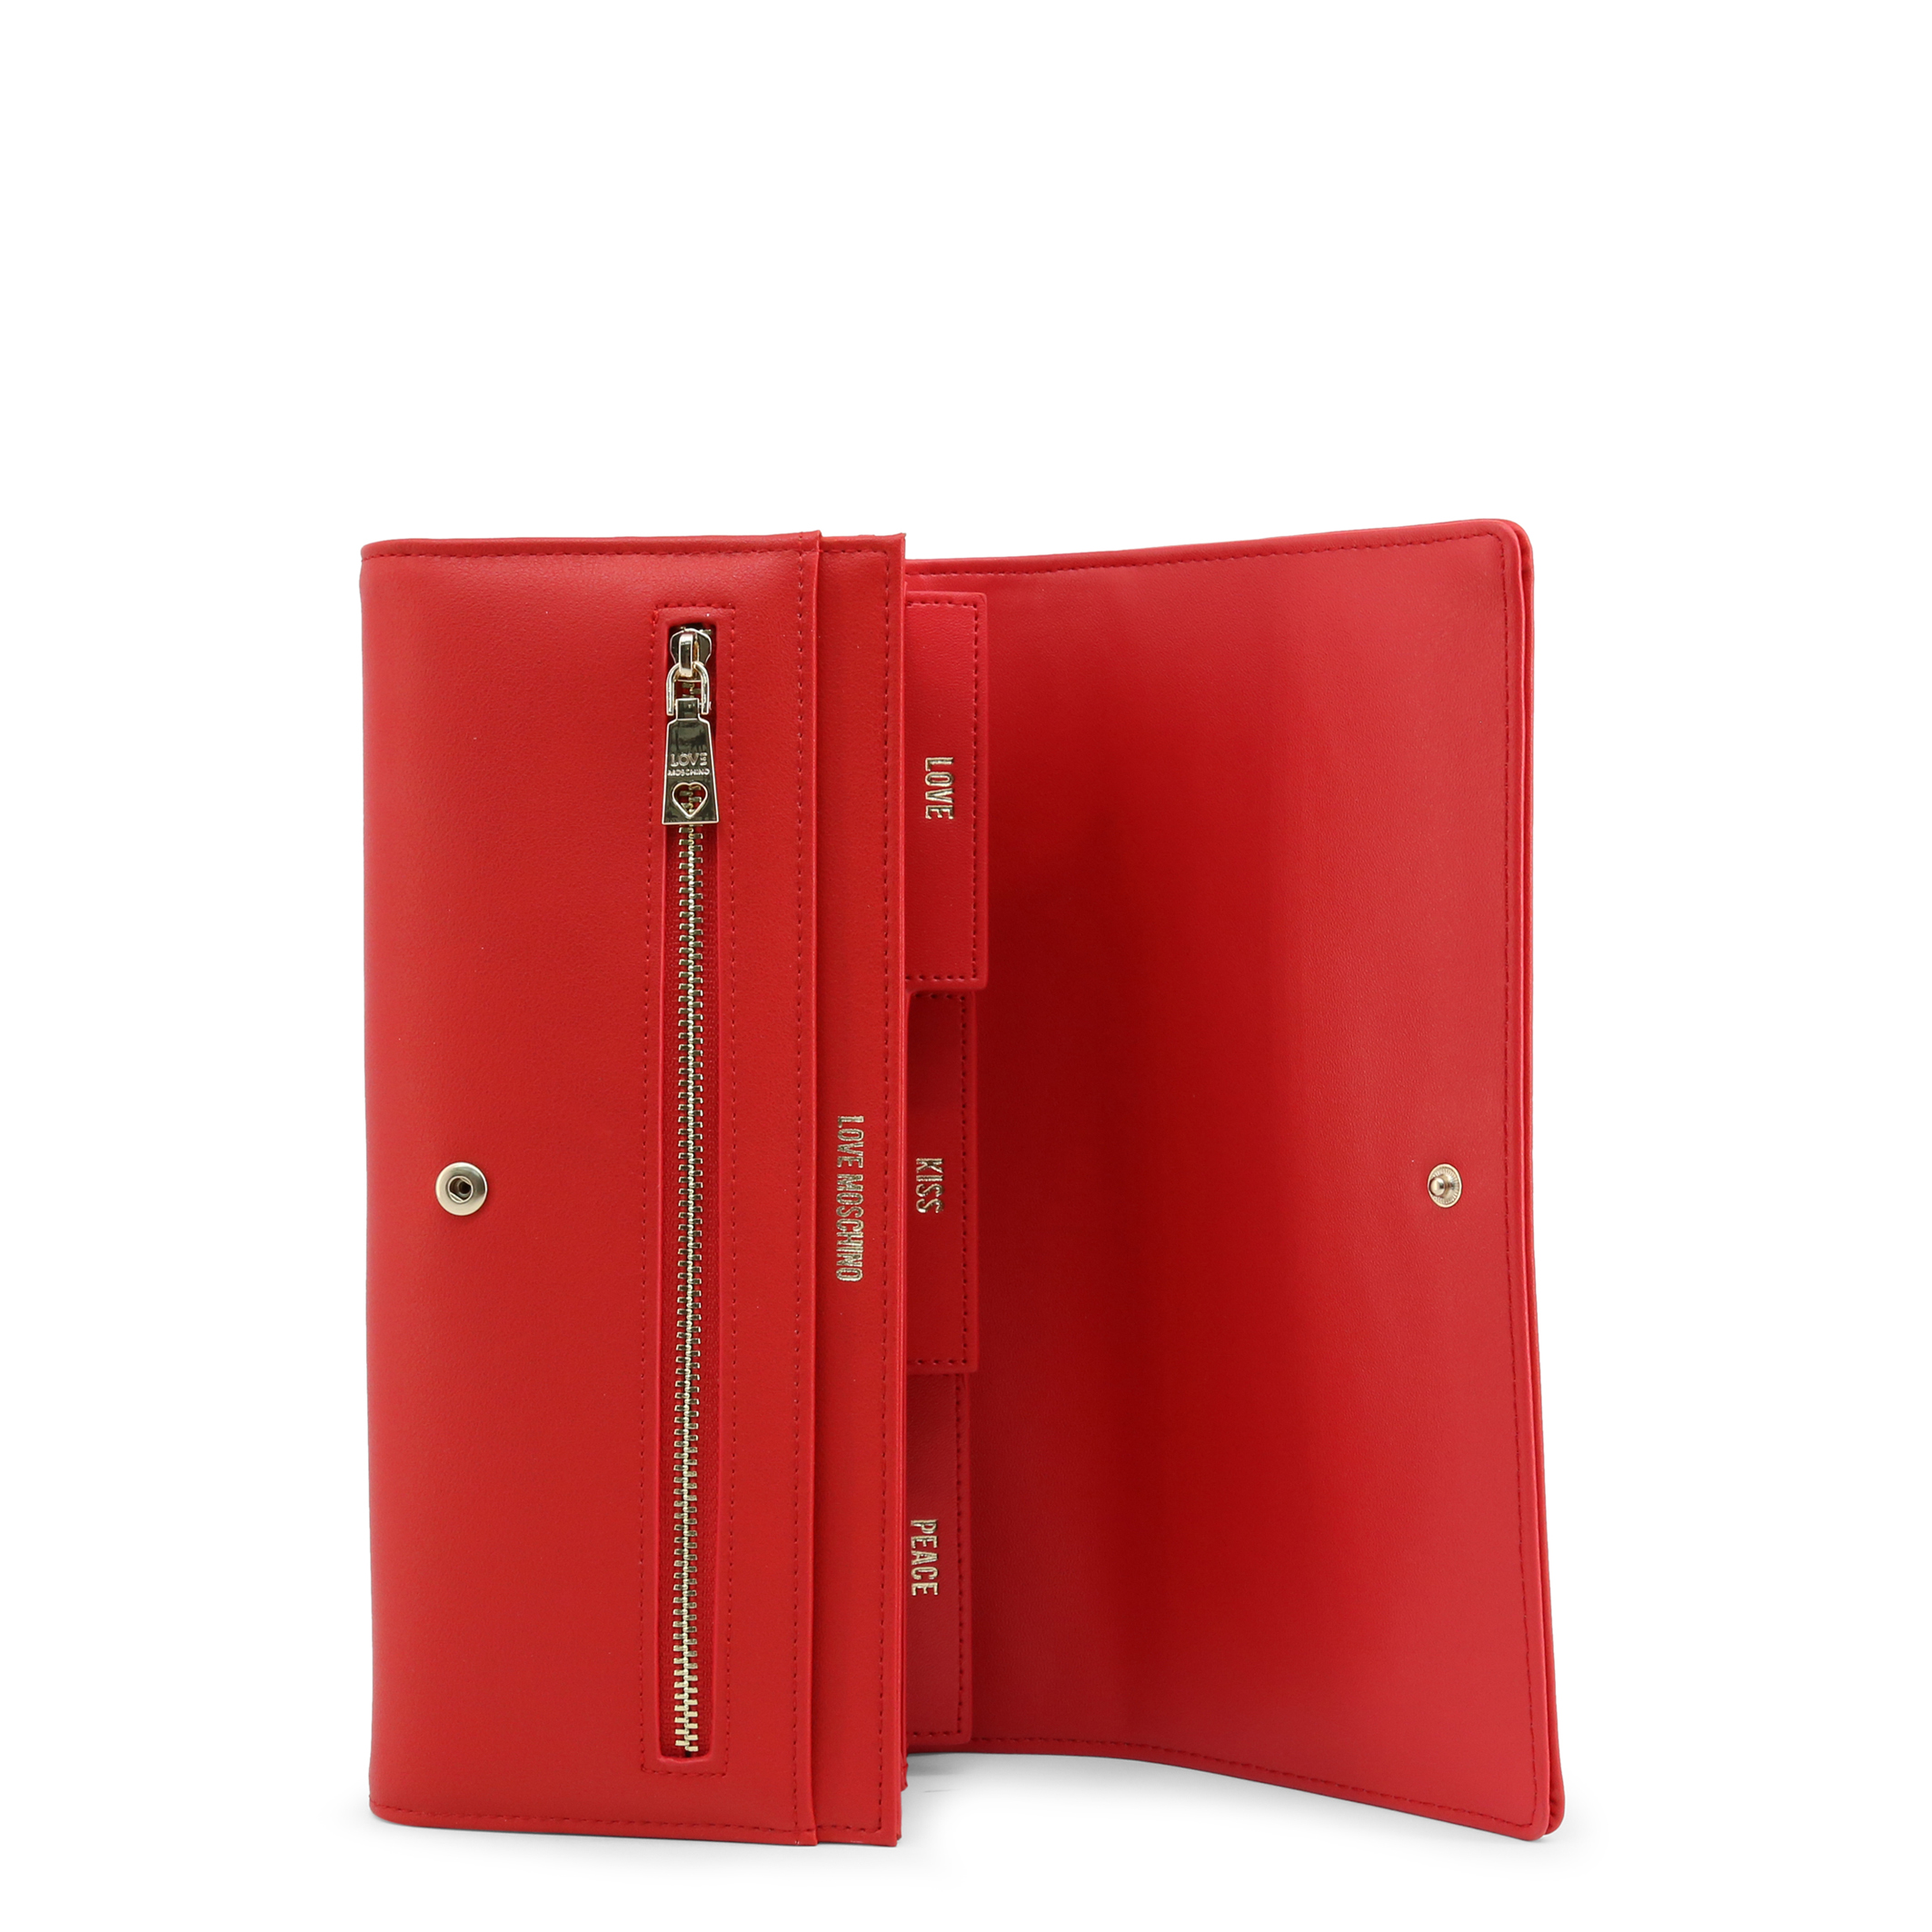 Portefeuilles / Porte-monnaie  Love moschino JC5612PP1BLE_0500 red